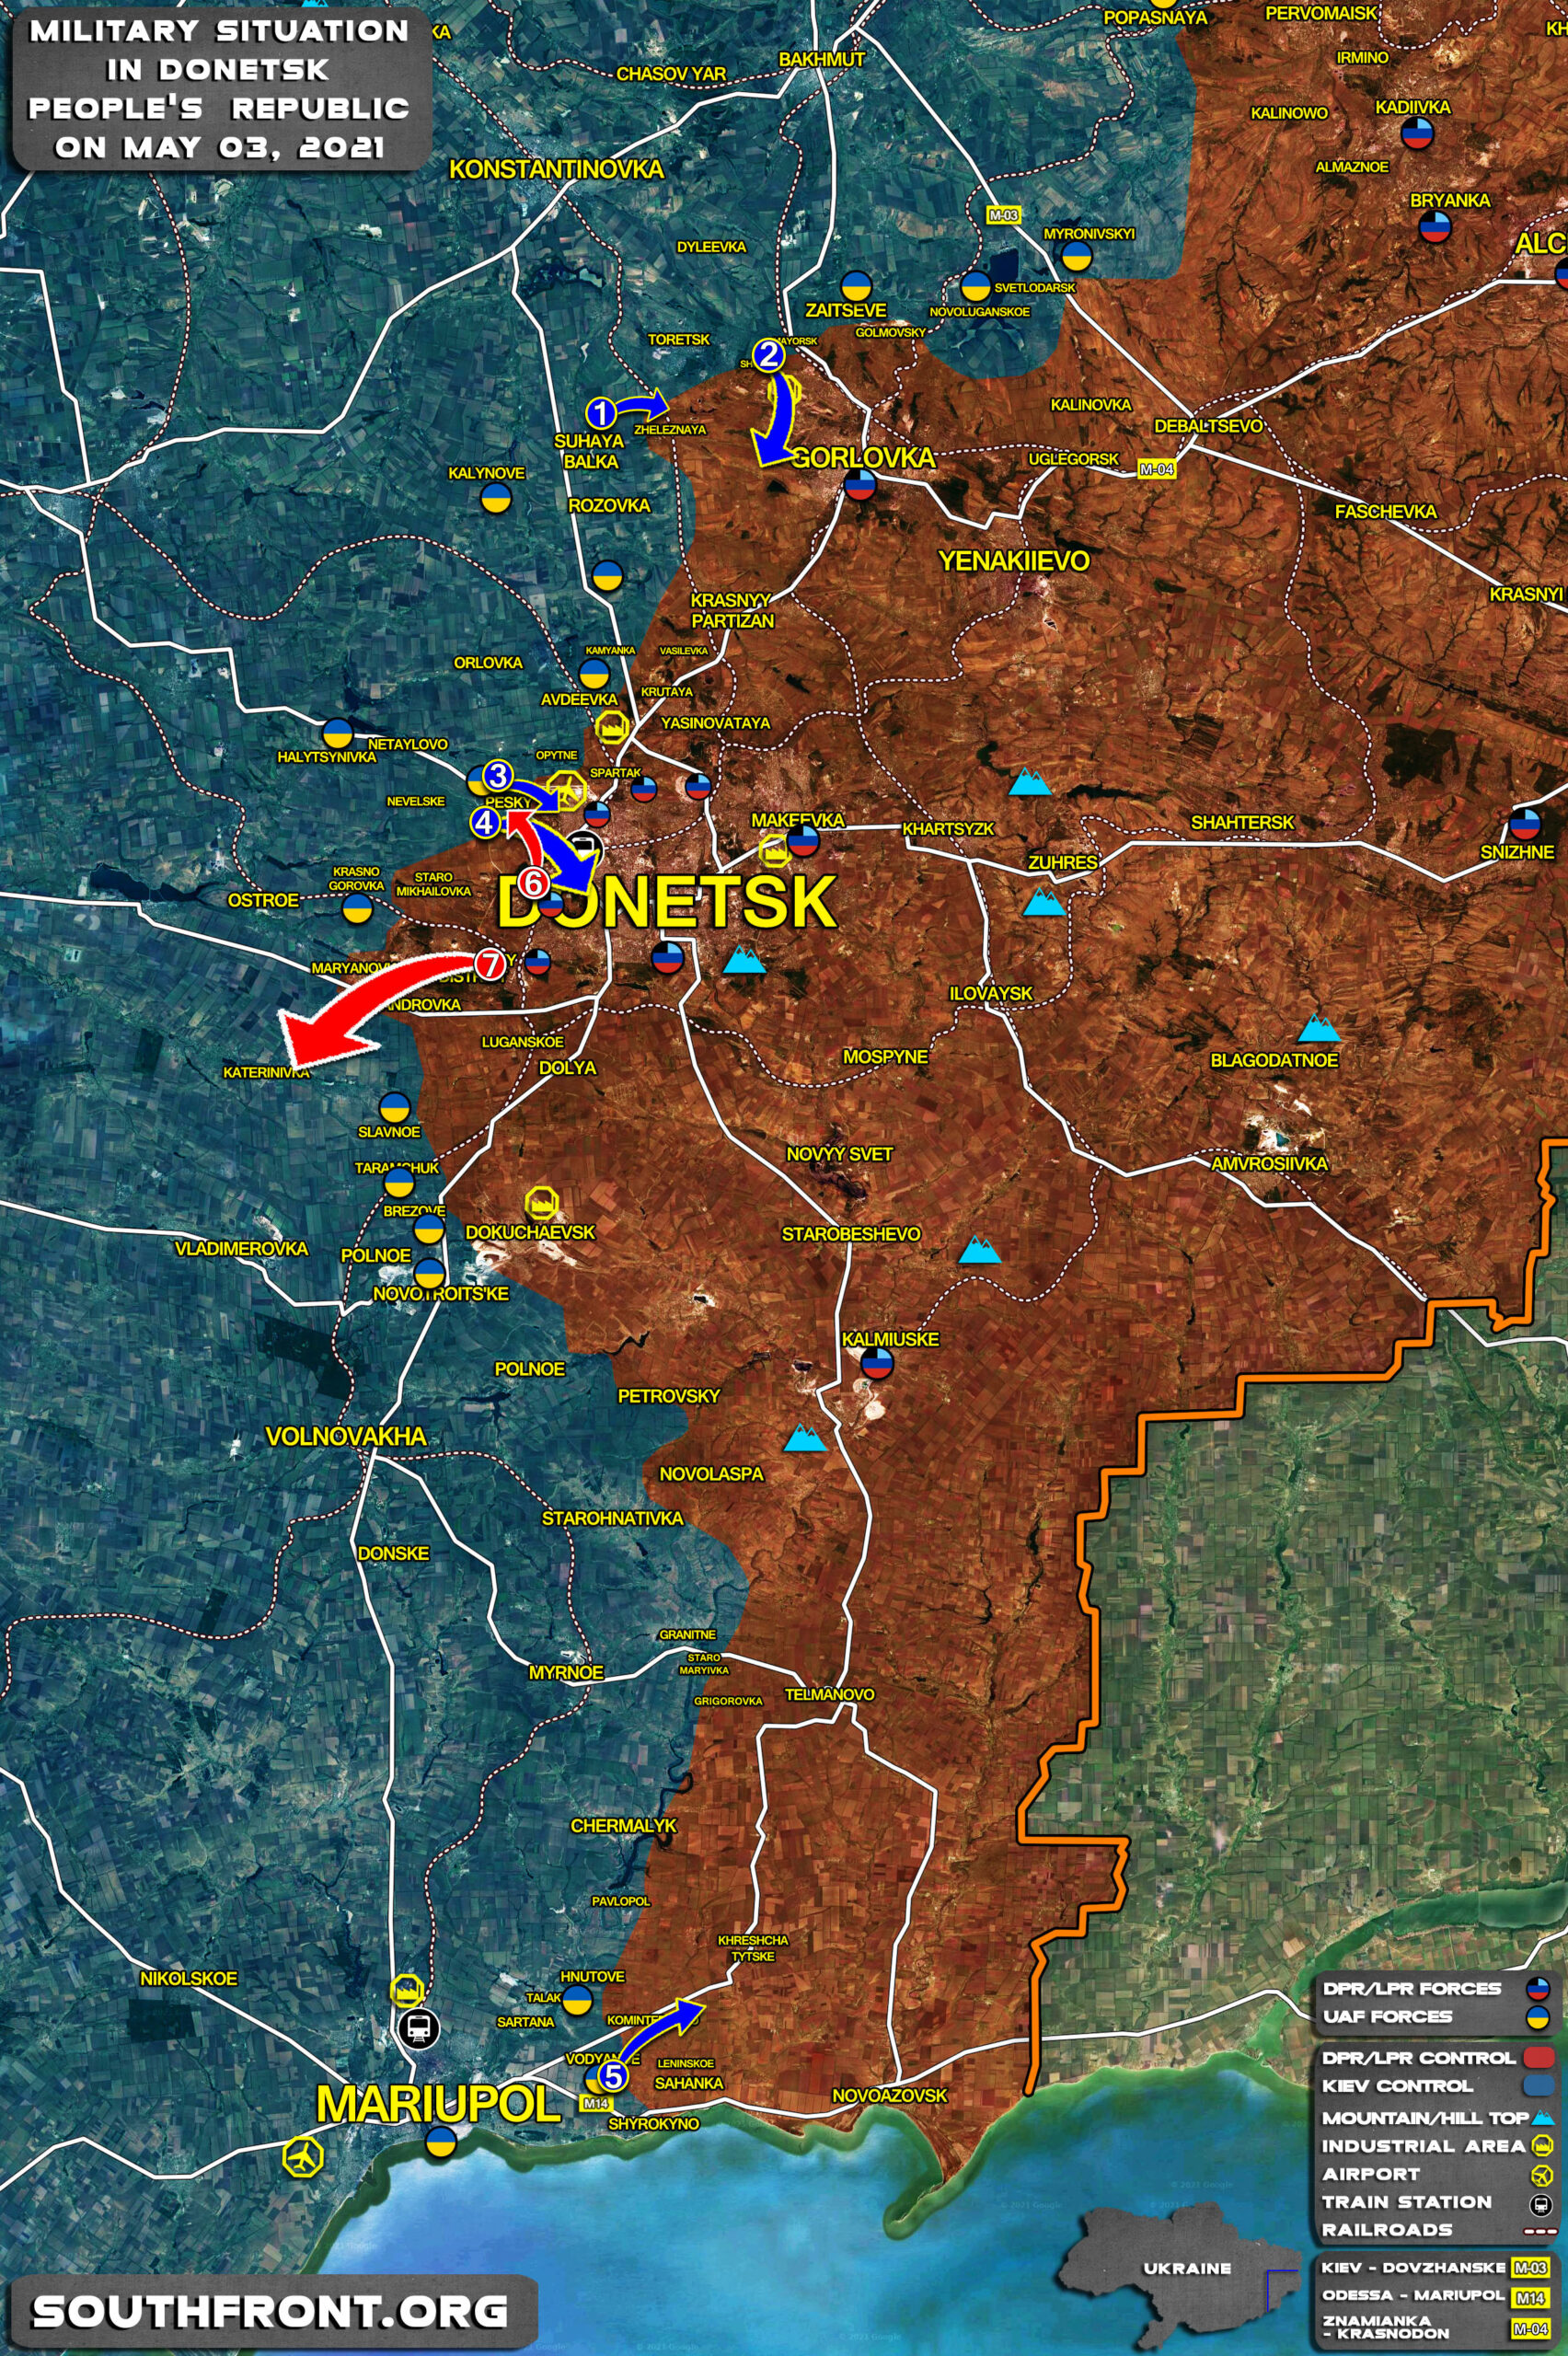 Military Situation In Donetsk People's Republic On May 3, 2021 (Map Update)